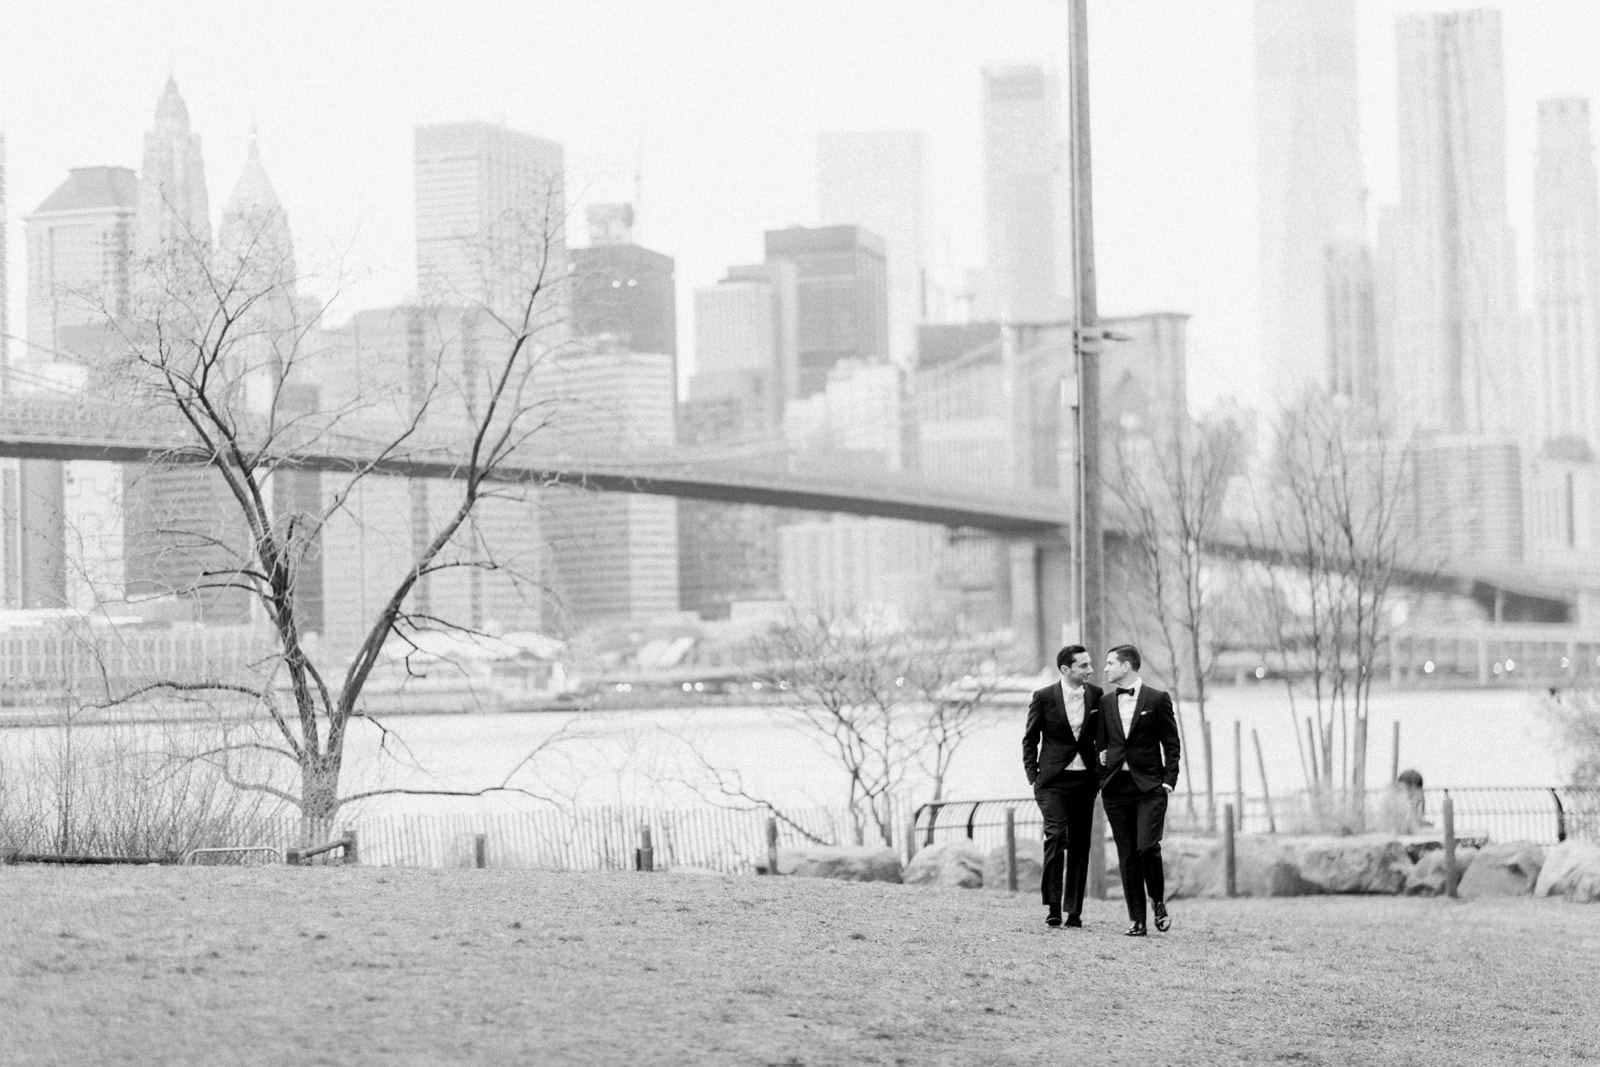 MATT + JASON'S WEDDING TEASERS